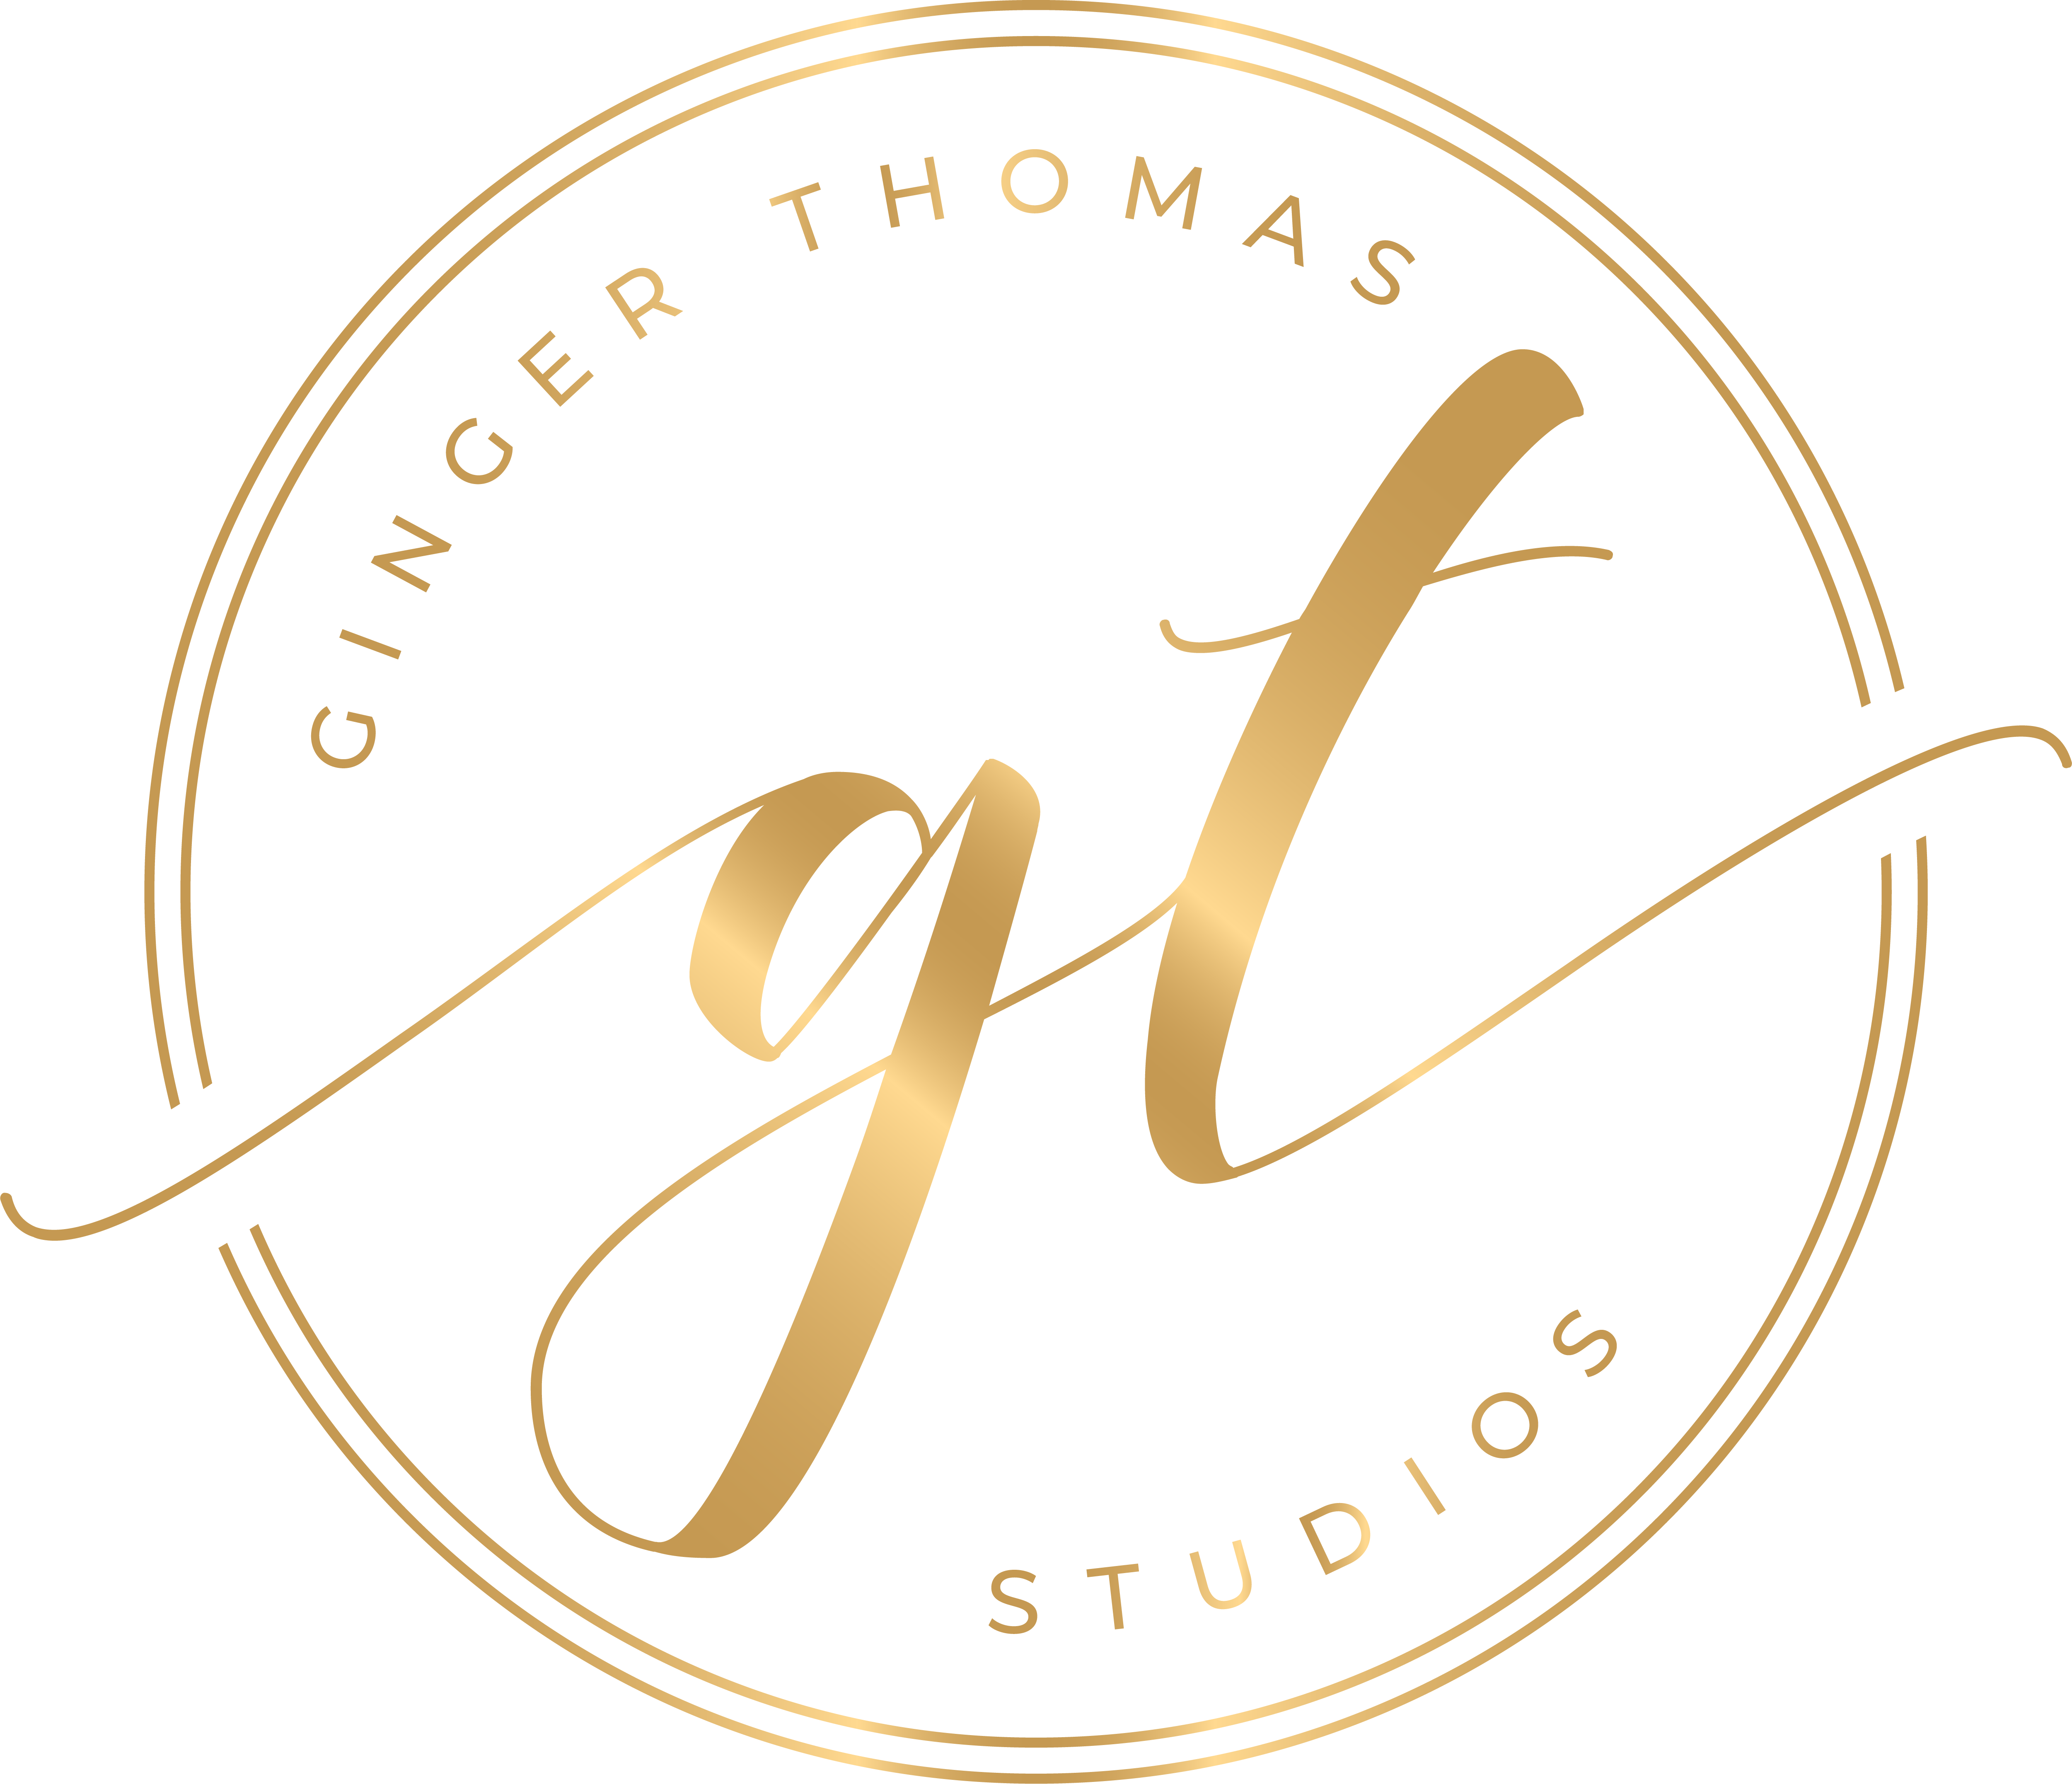 Ginger Thomas Studios